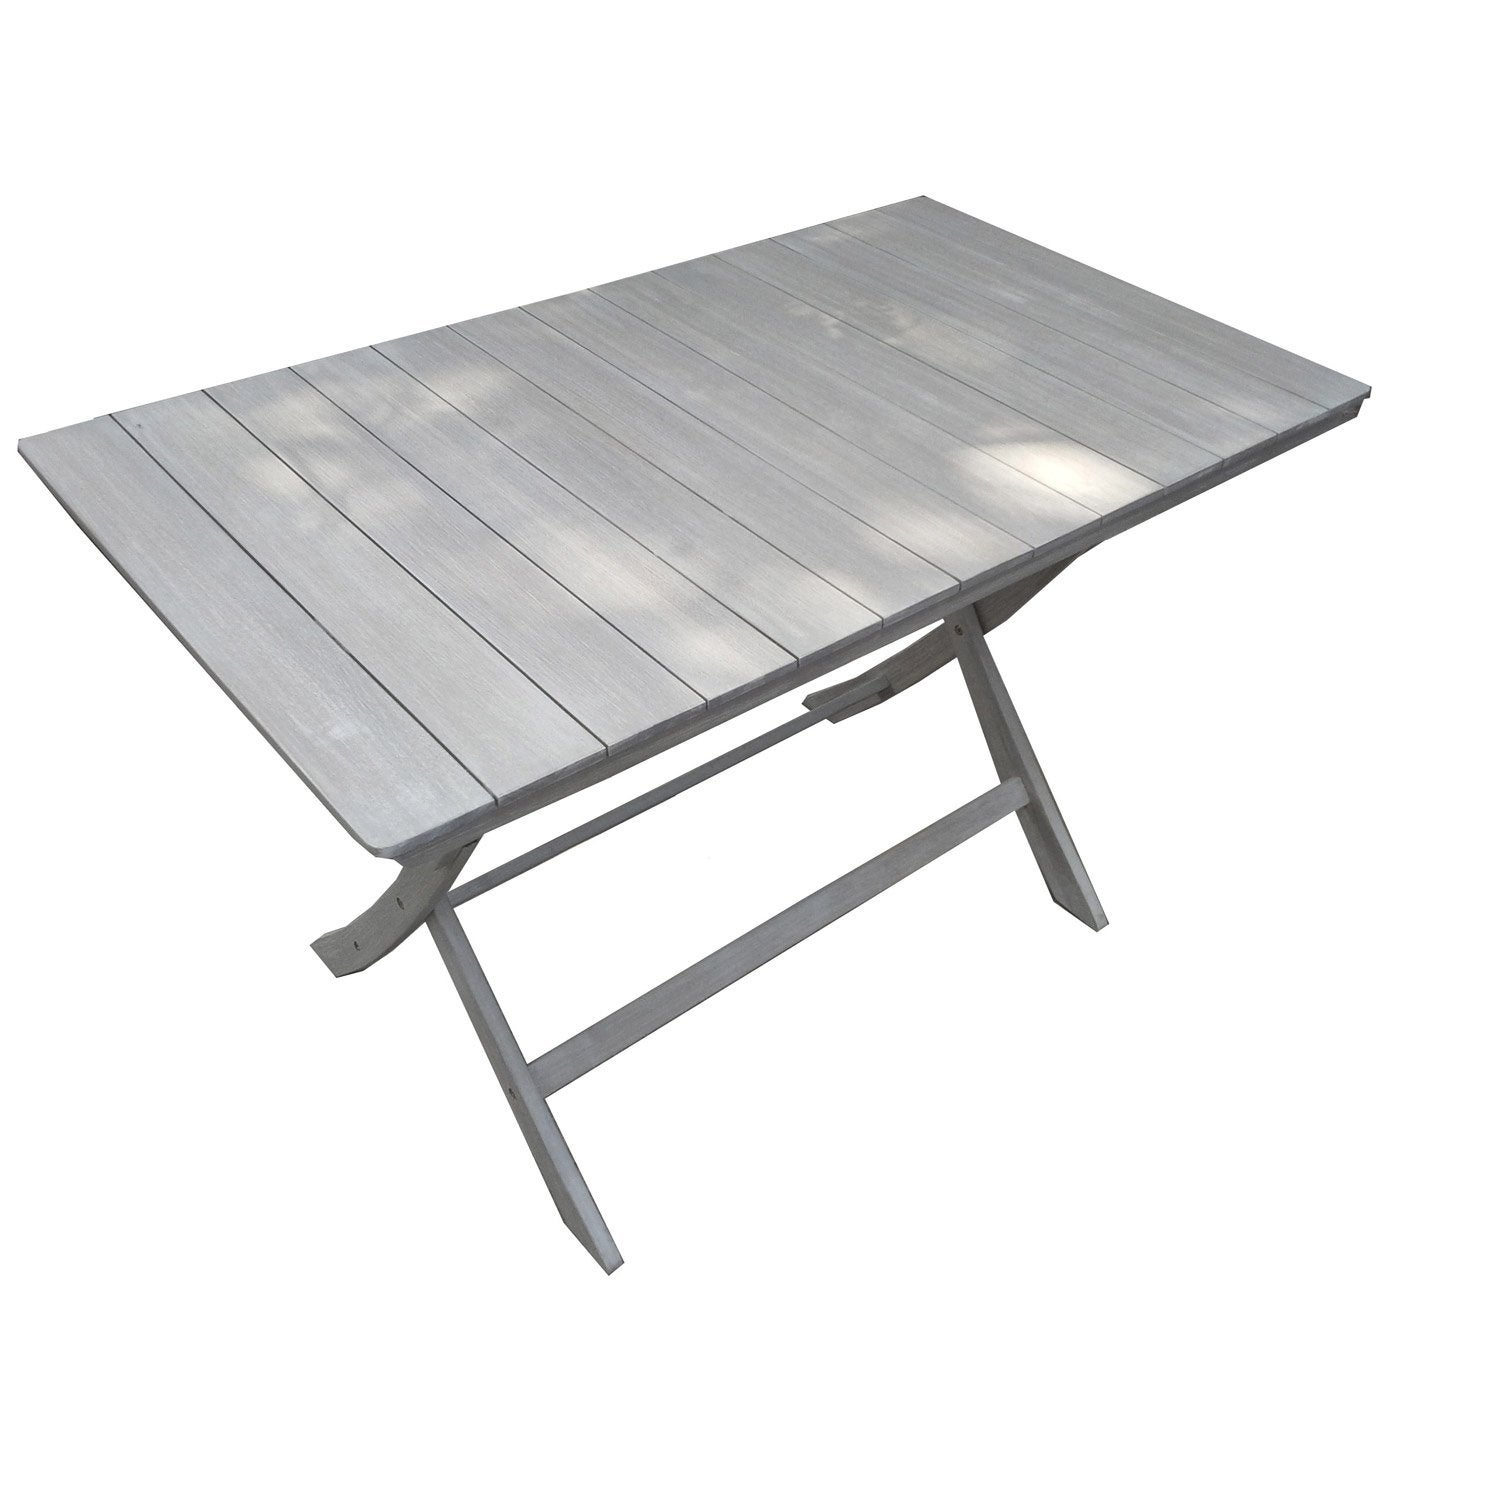 Table de jardin naterial portofino rectangulaire gris 4 for Casetas para jardin leroy merlin